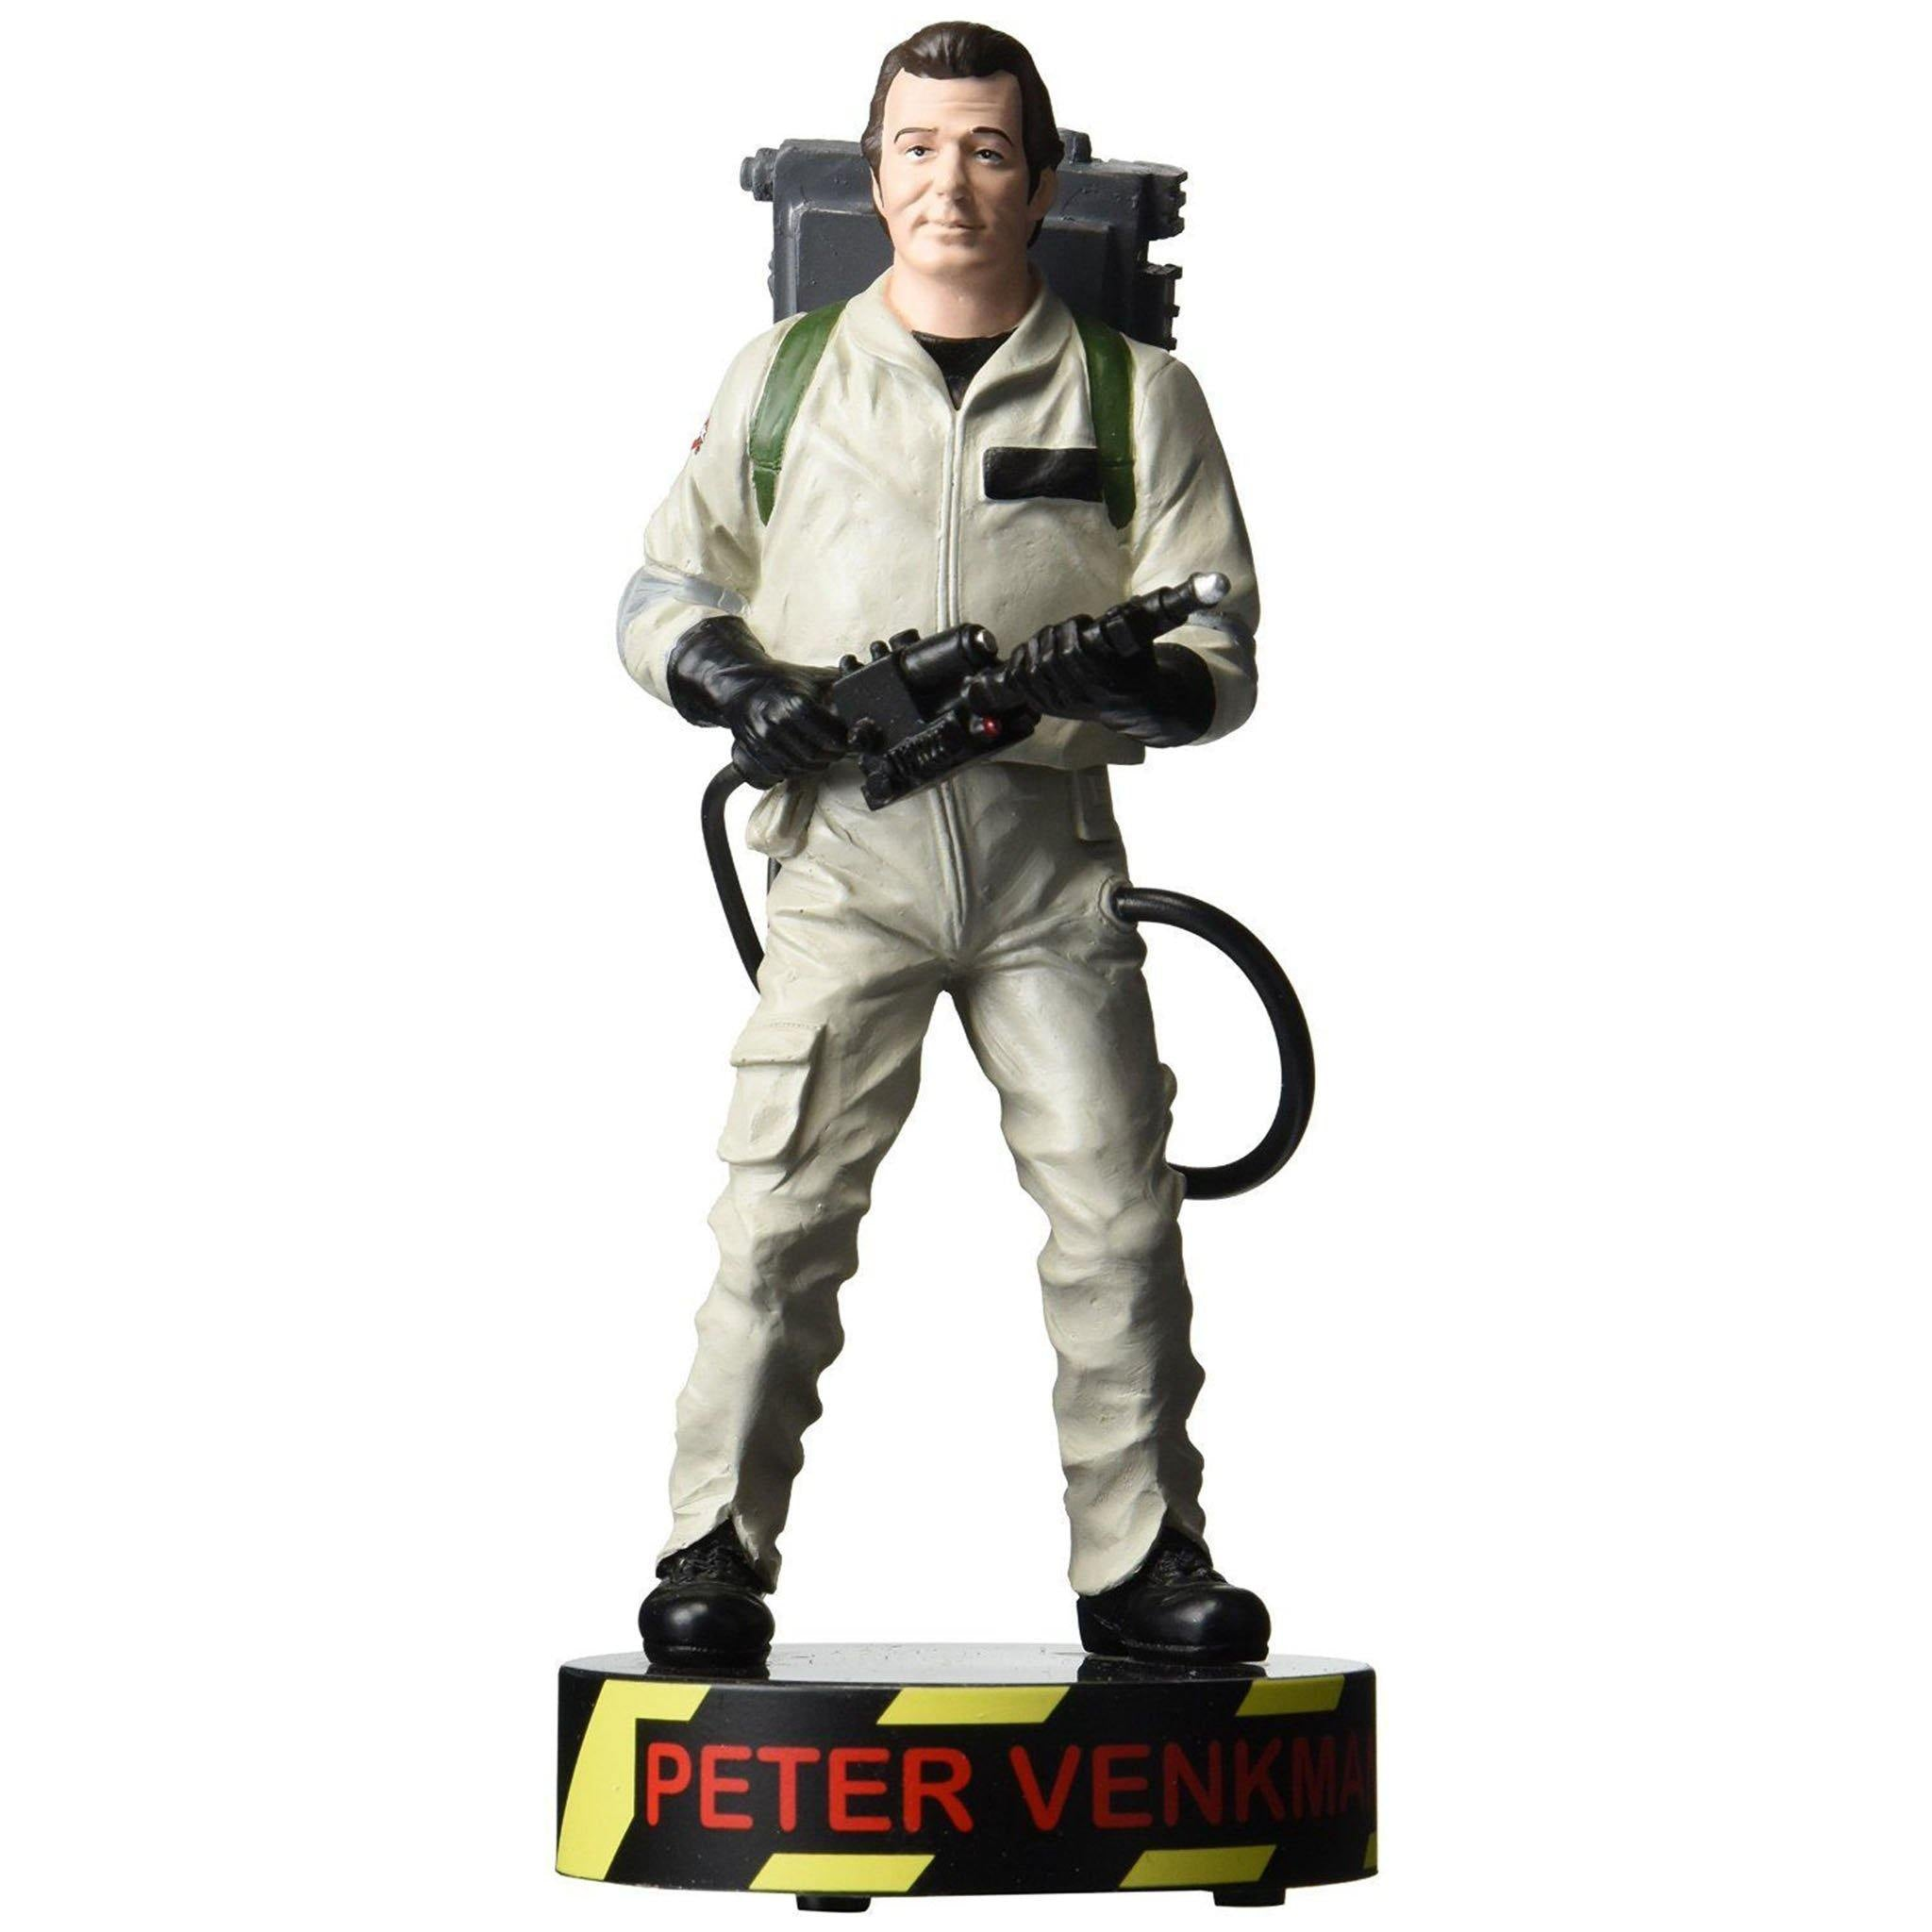 Ghostbusters Peter Venkman Motion Statue By Factory Entertainment - NEXTLEVELUK